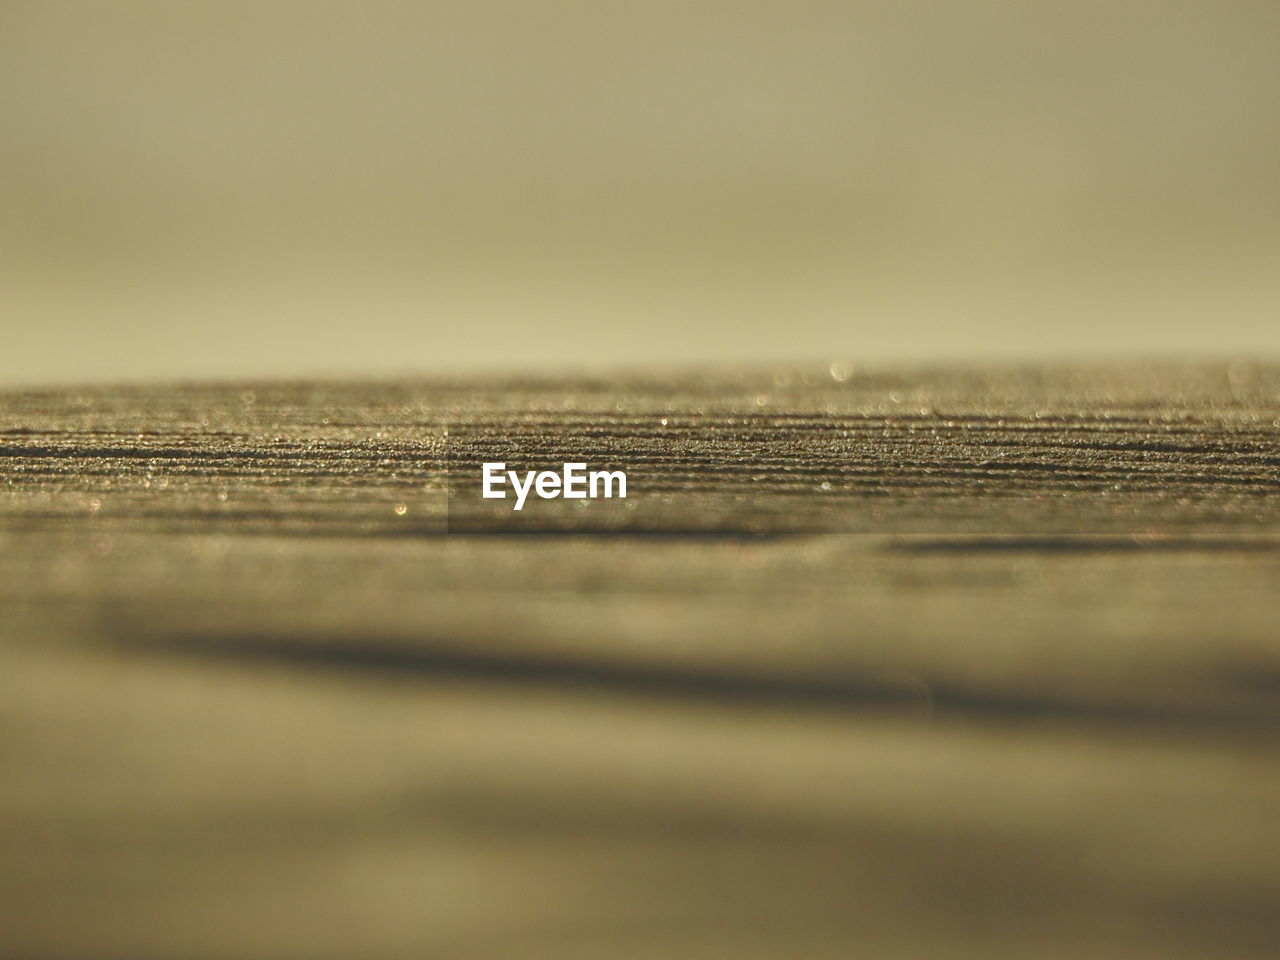 selective focus, close-up, textured, no people, wood - material, surface level, backgrounds, nature, day, outdoors